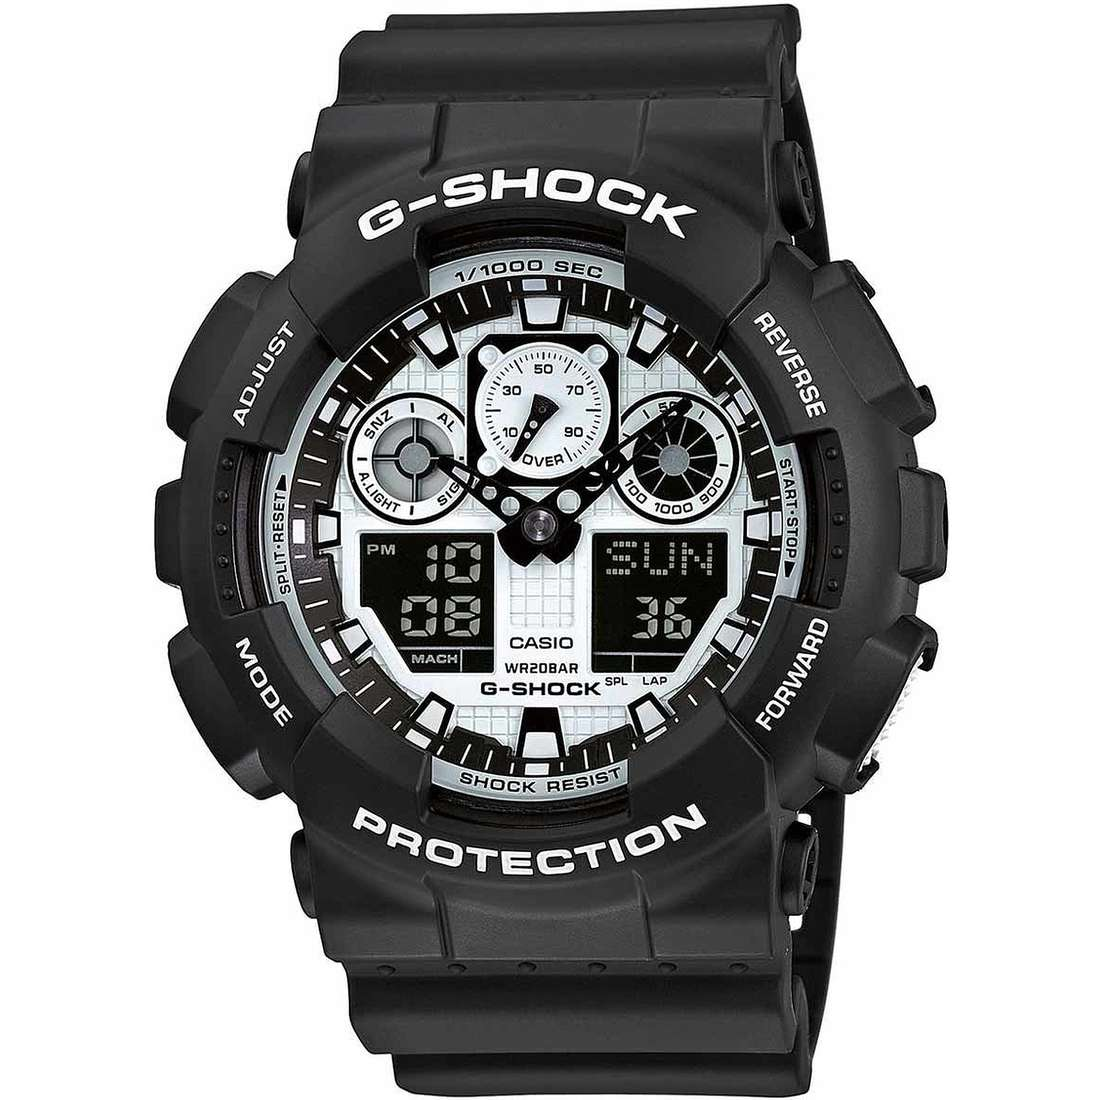 montre multifonction homme Casio G-Shock GA-100BW-1AER